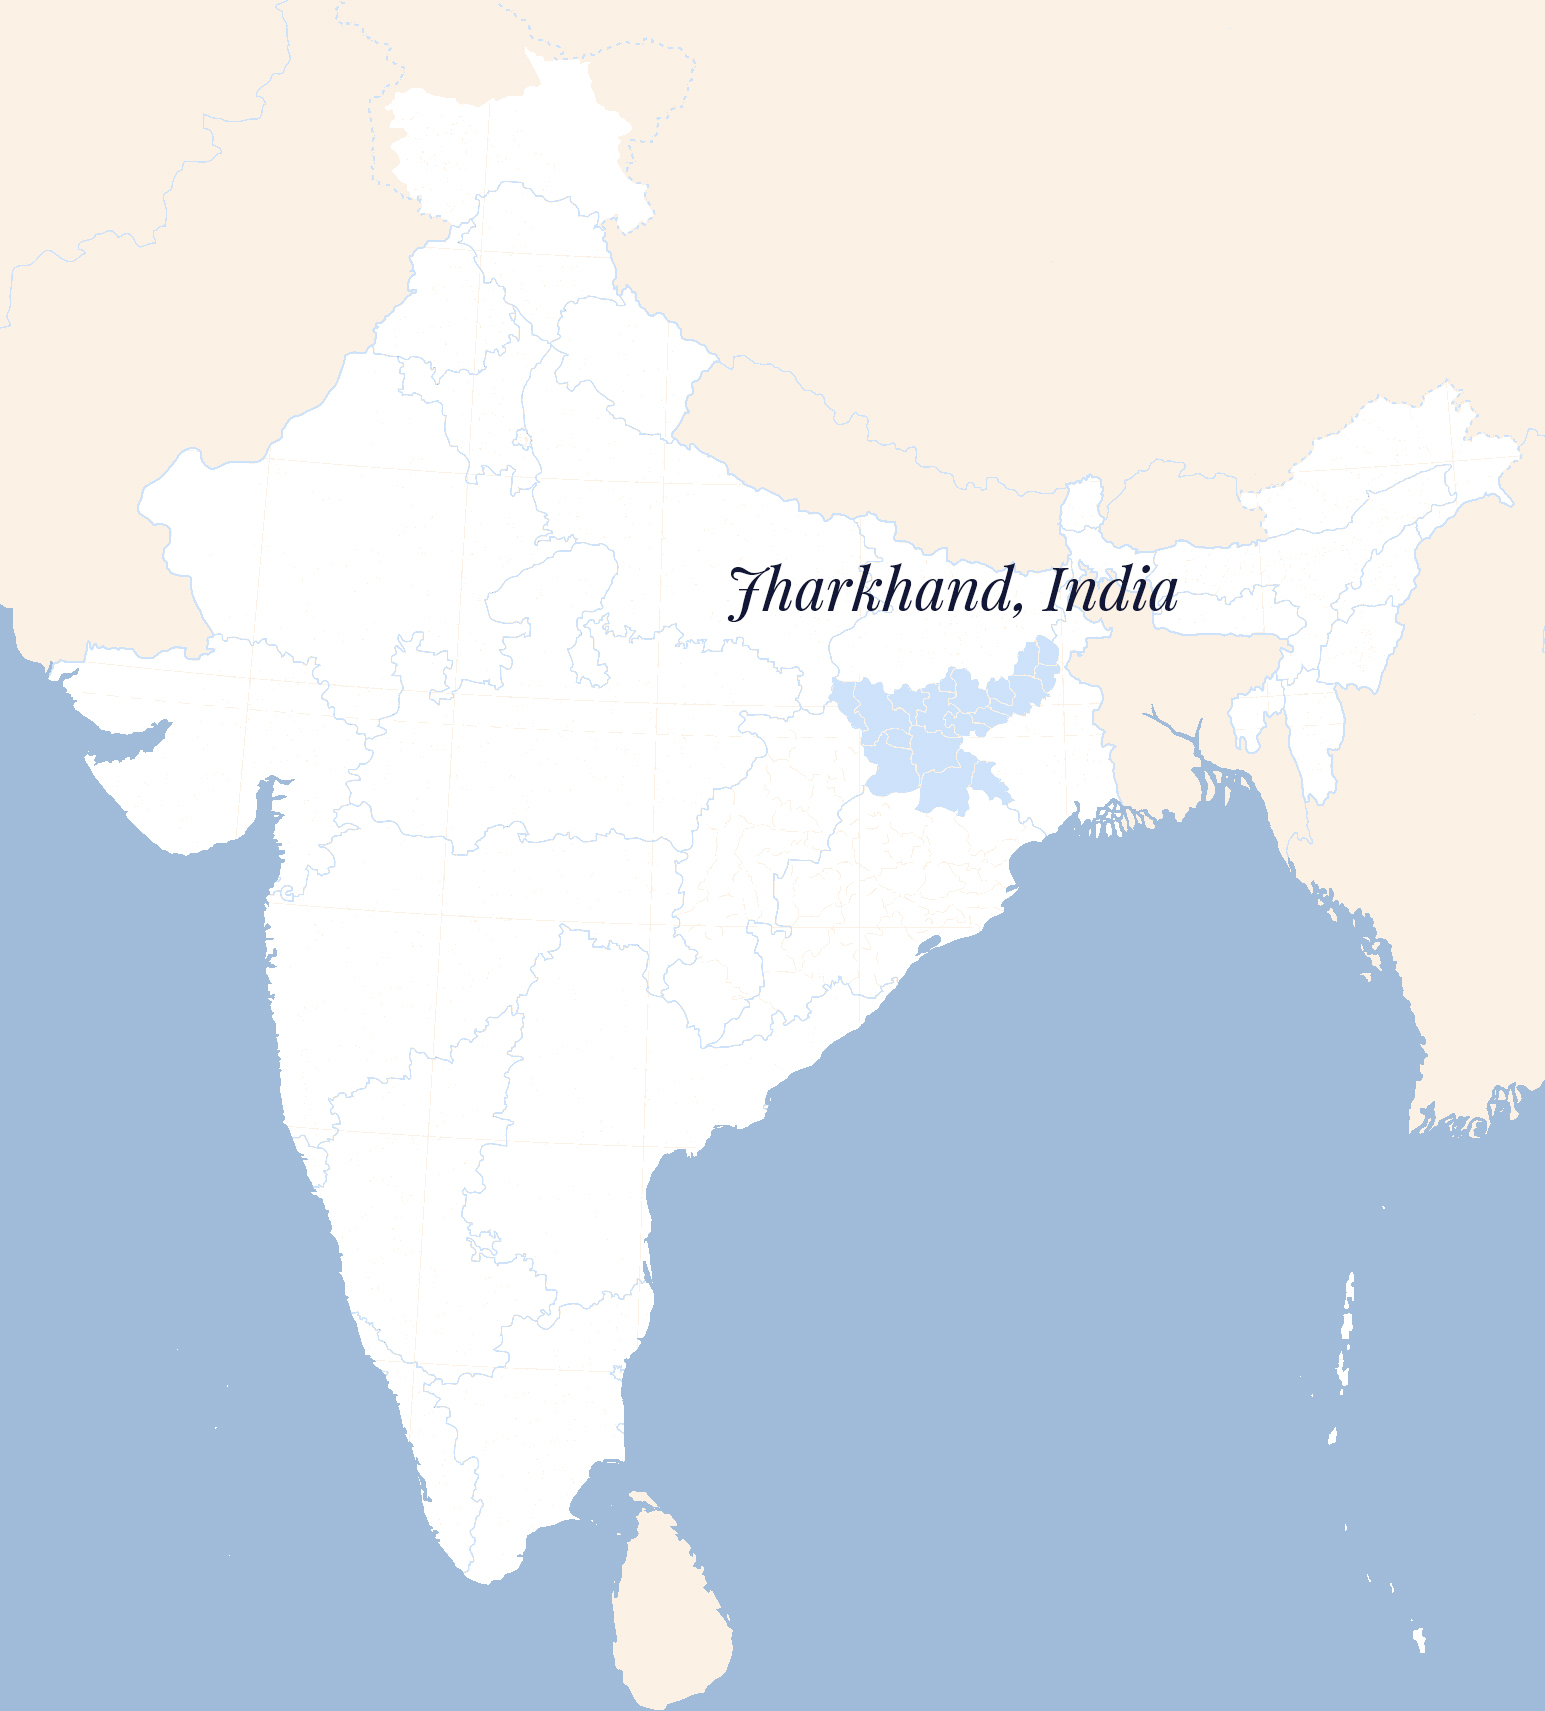 Jharkand, while world-renowned for its silkworm cultivation, remains an impoverished region where most of the population is precluded from reaping the benefits of their work with this precious resource. Project Cocccon, founded in 2012, has made it its aim to involve the local community in its own healthy economic development, creating equitable employment opportunities centered around its innovative new modes of organic silk production.